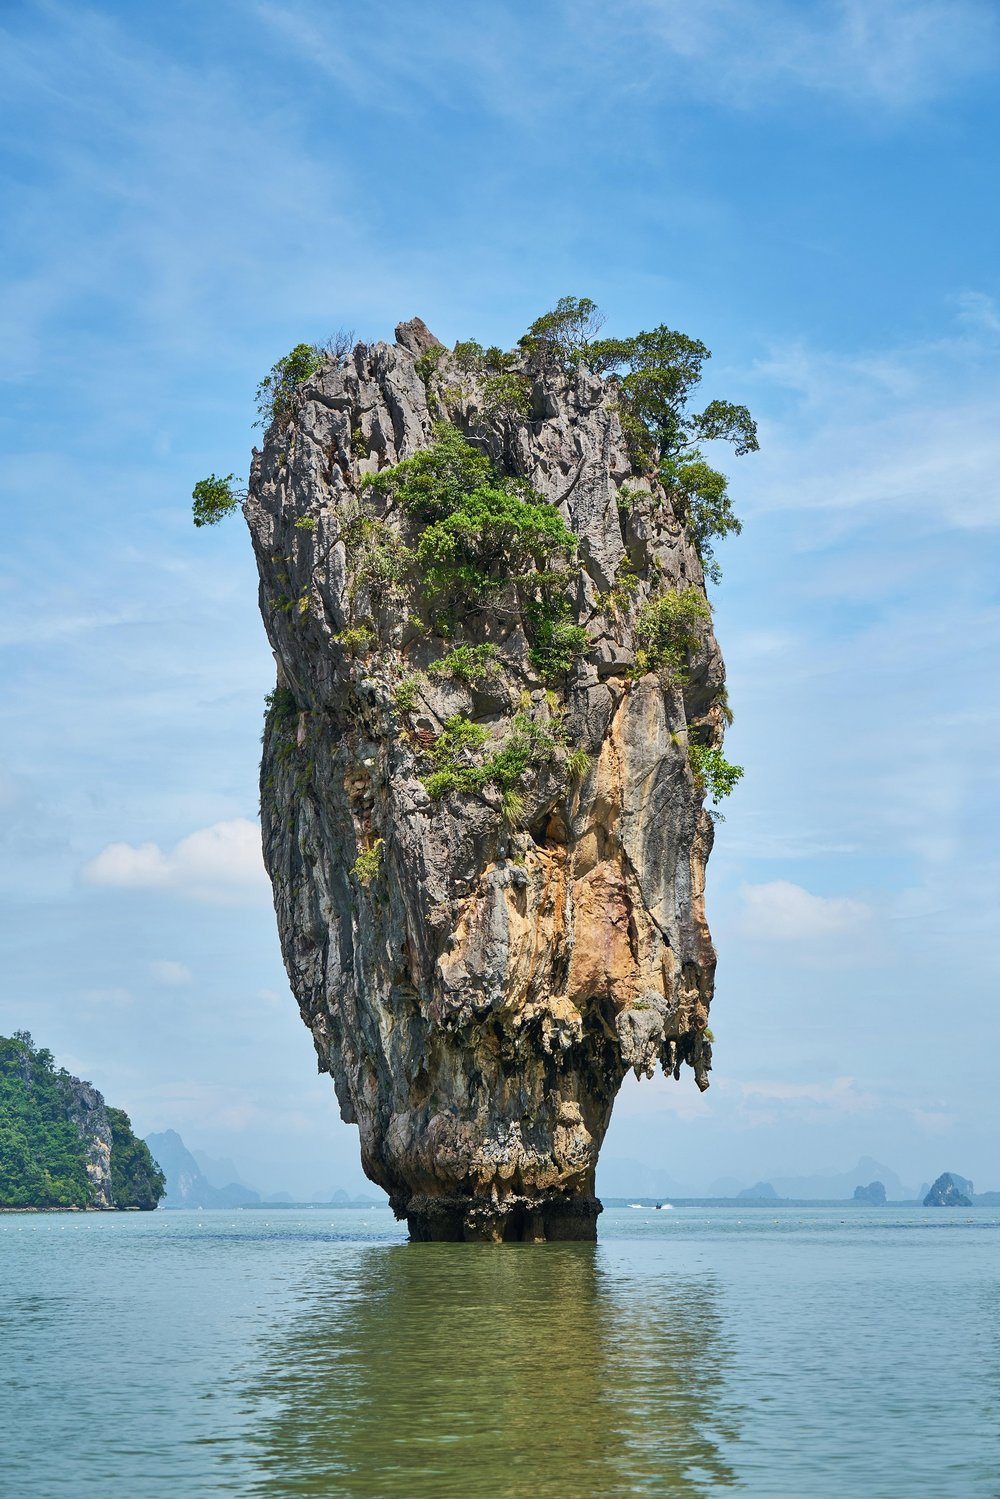 Scrolled image island in the sea